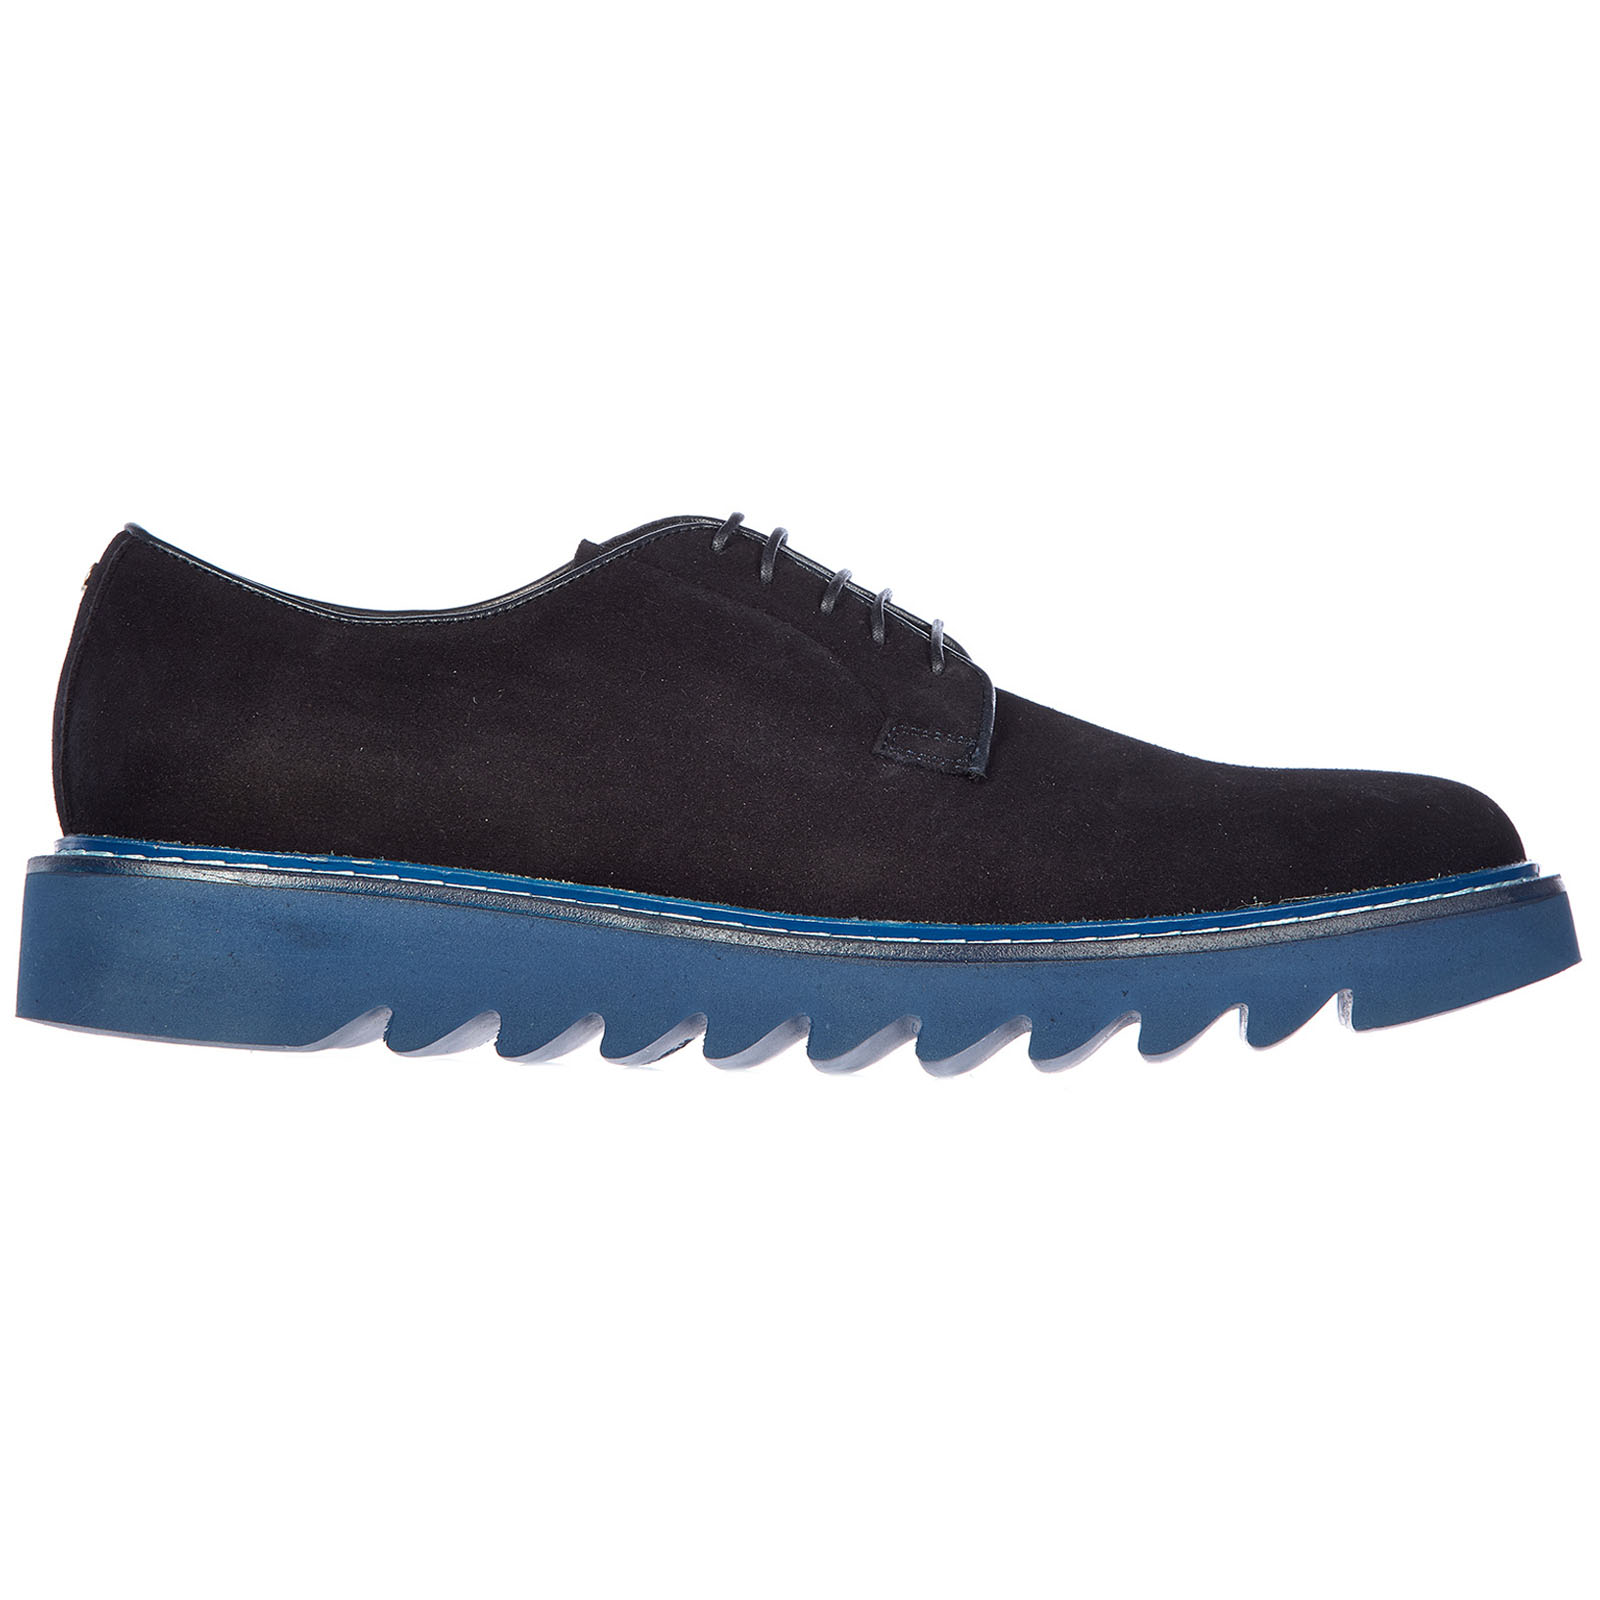 Men's classic suede lace up laced formal shoes derby vitello